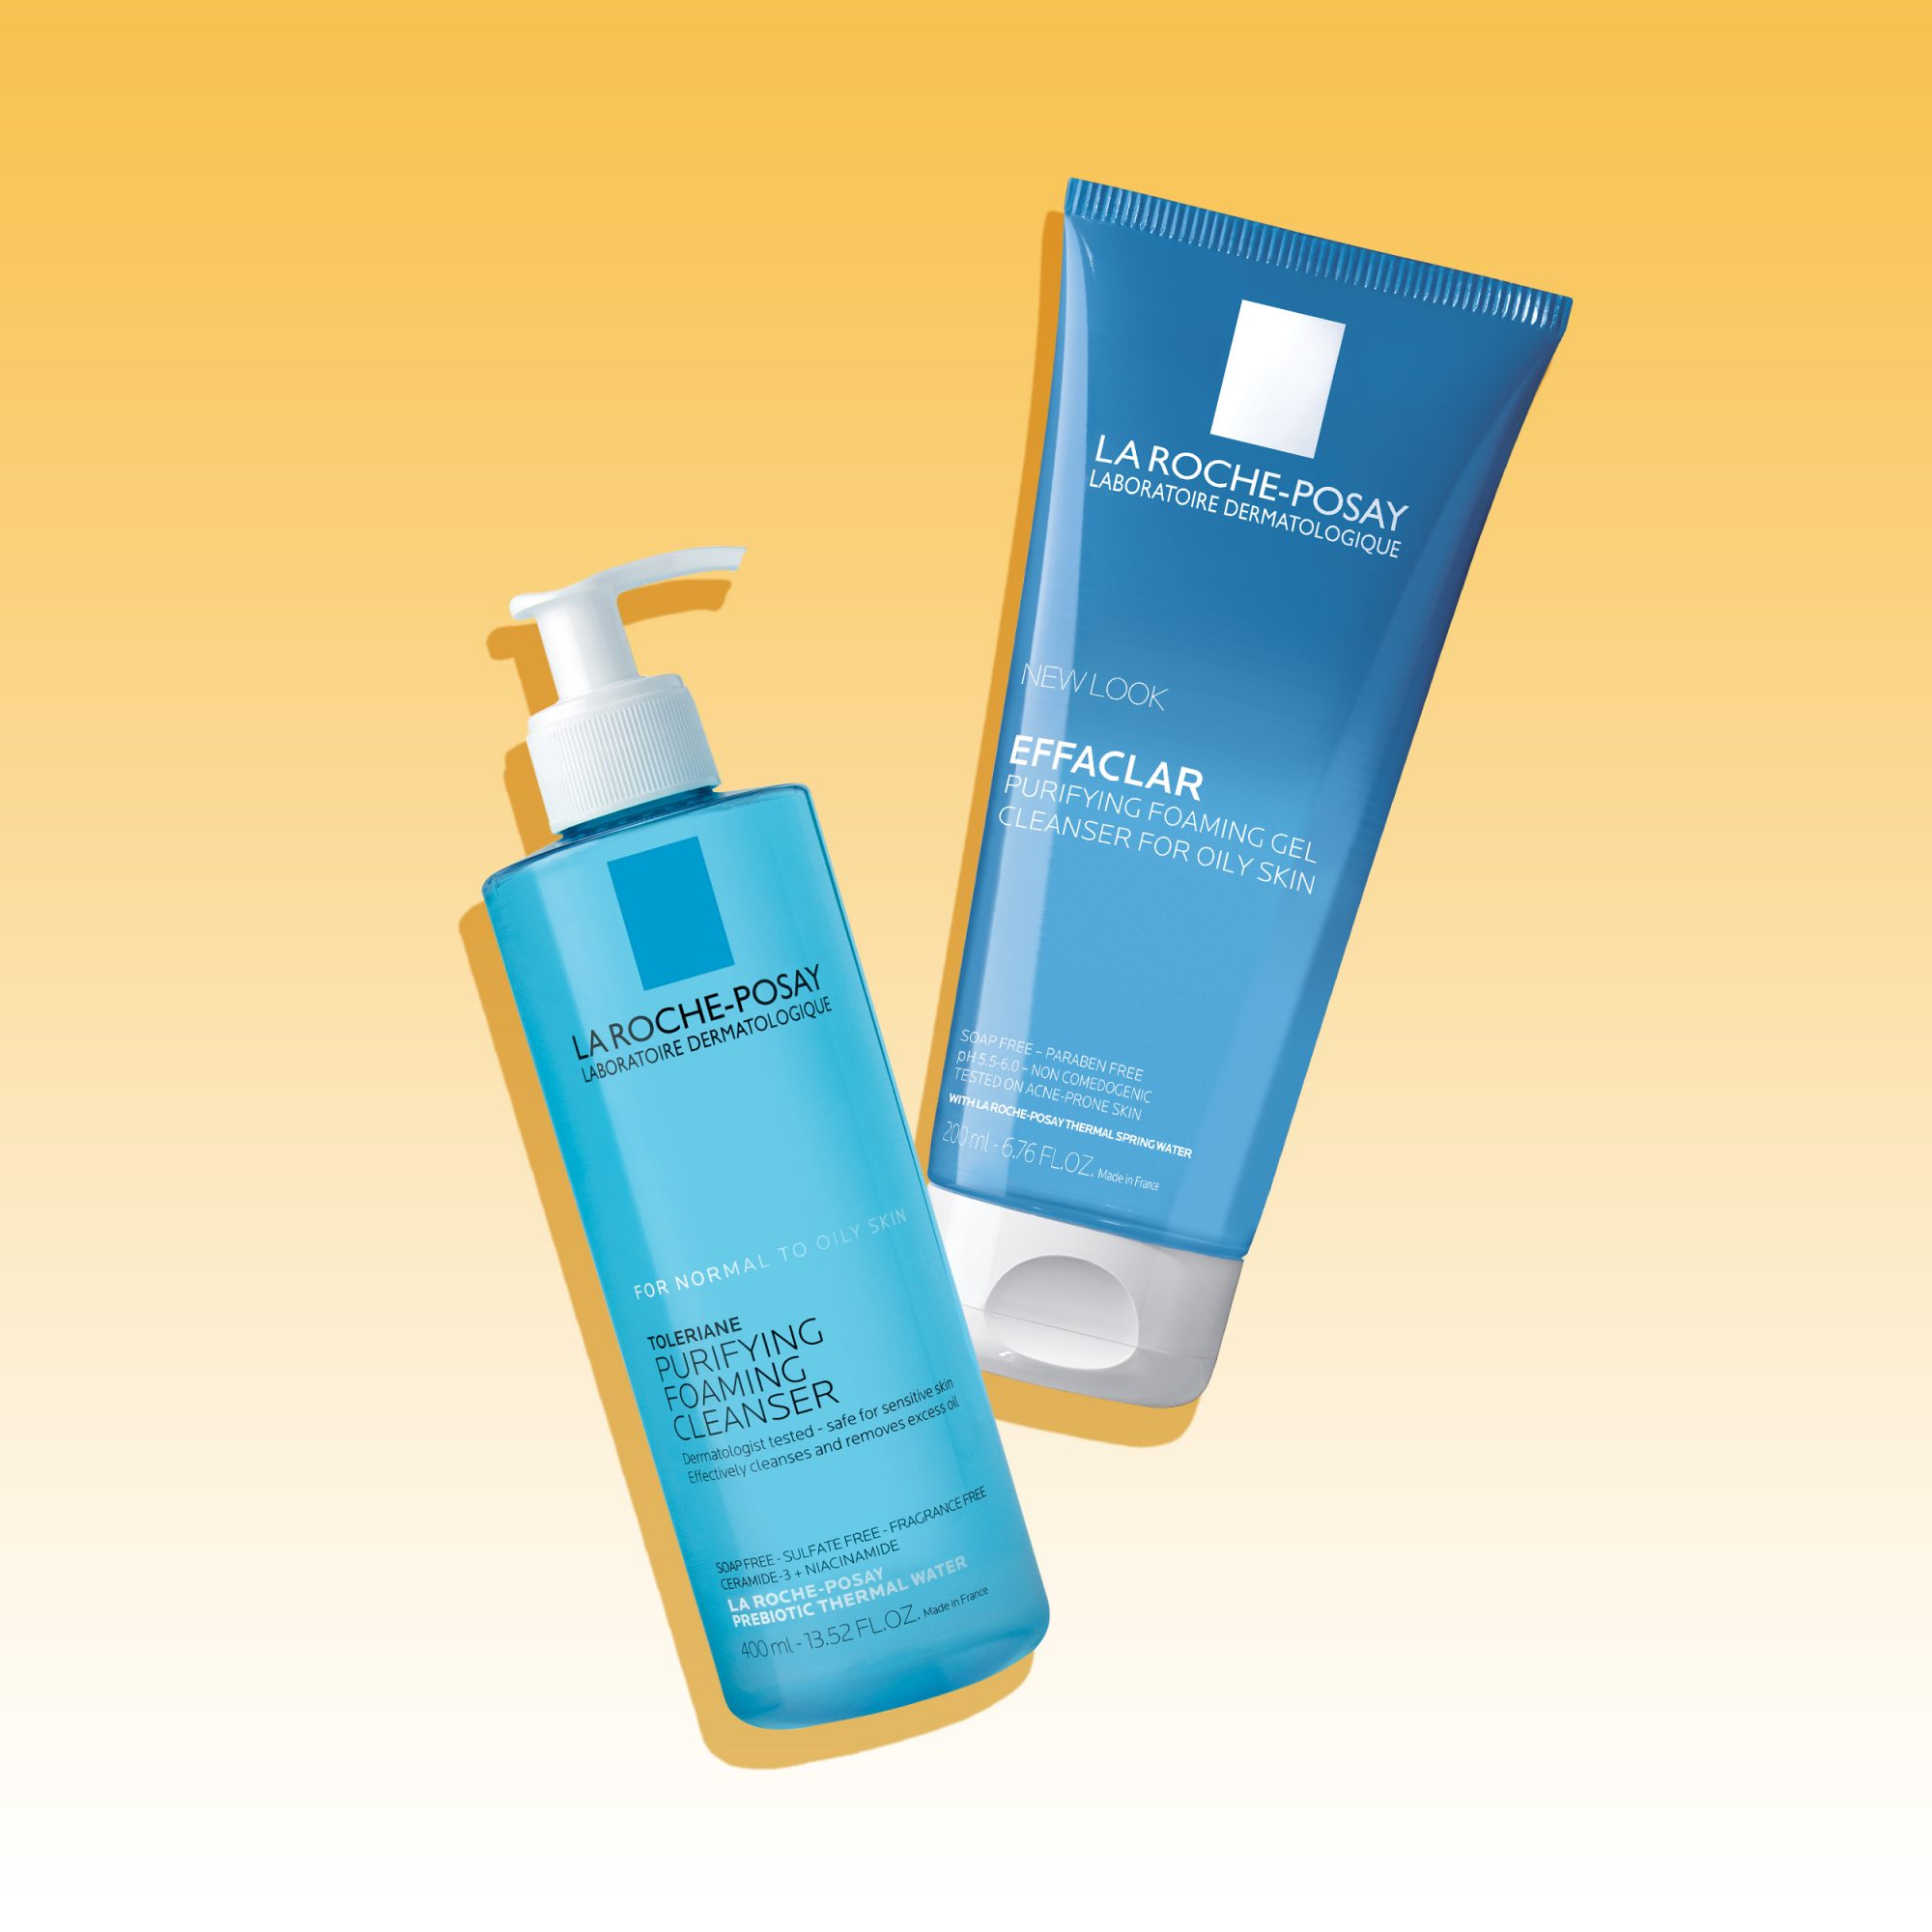 La Roche Posay Double Repair Hydrating Cleanser Sells Every Two Seconds Instyle